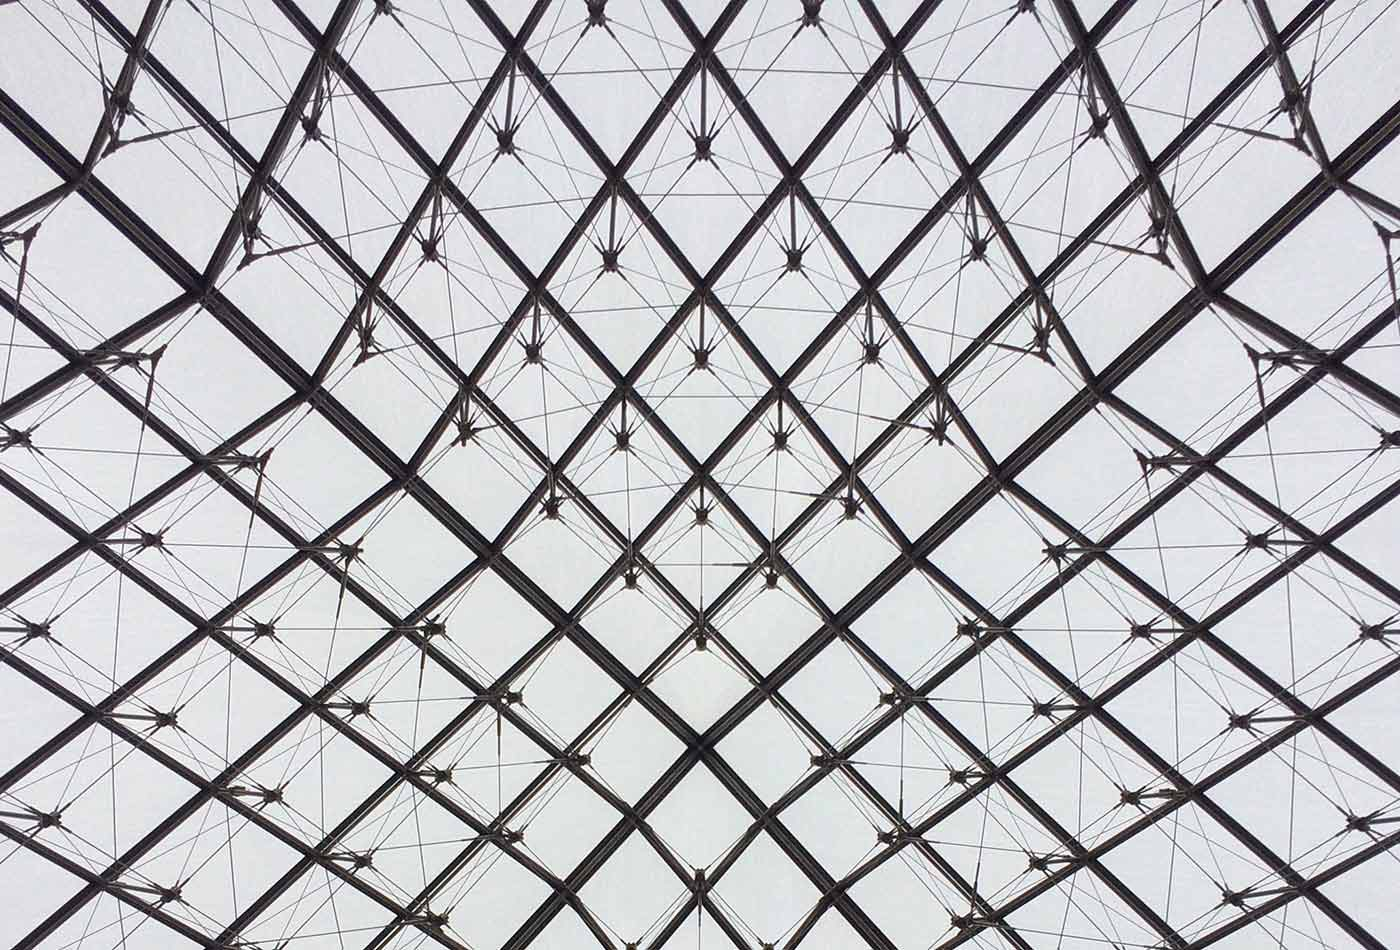 Louvre mesh perspective